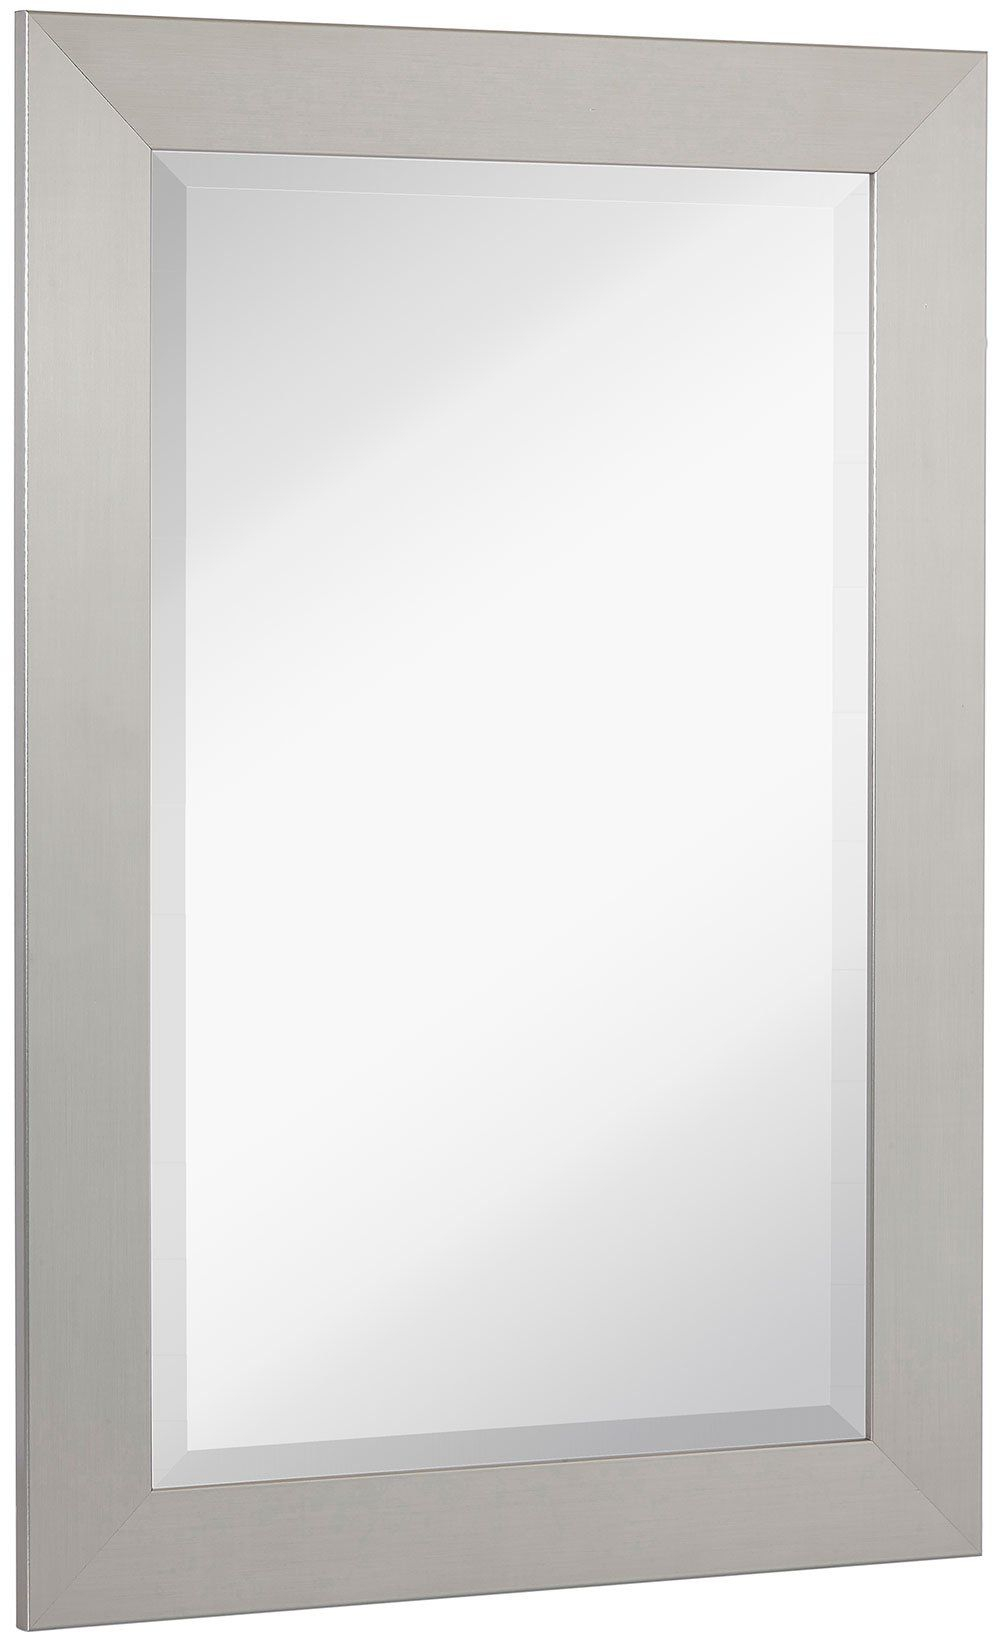 New Pewter Modern Metallic Look Rectangle Wall Mirror With Regard To Rectangle Pewter Beveled Wall Mirrors (Image 15 of 20)